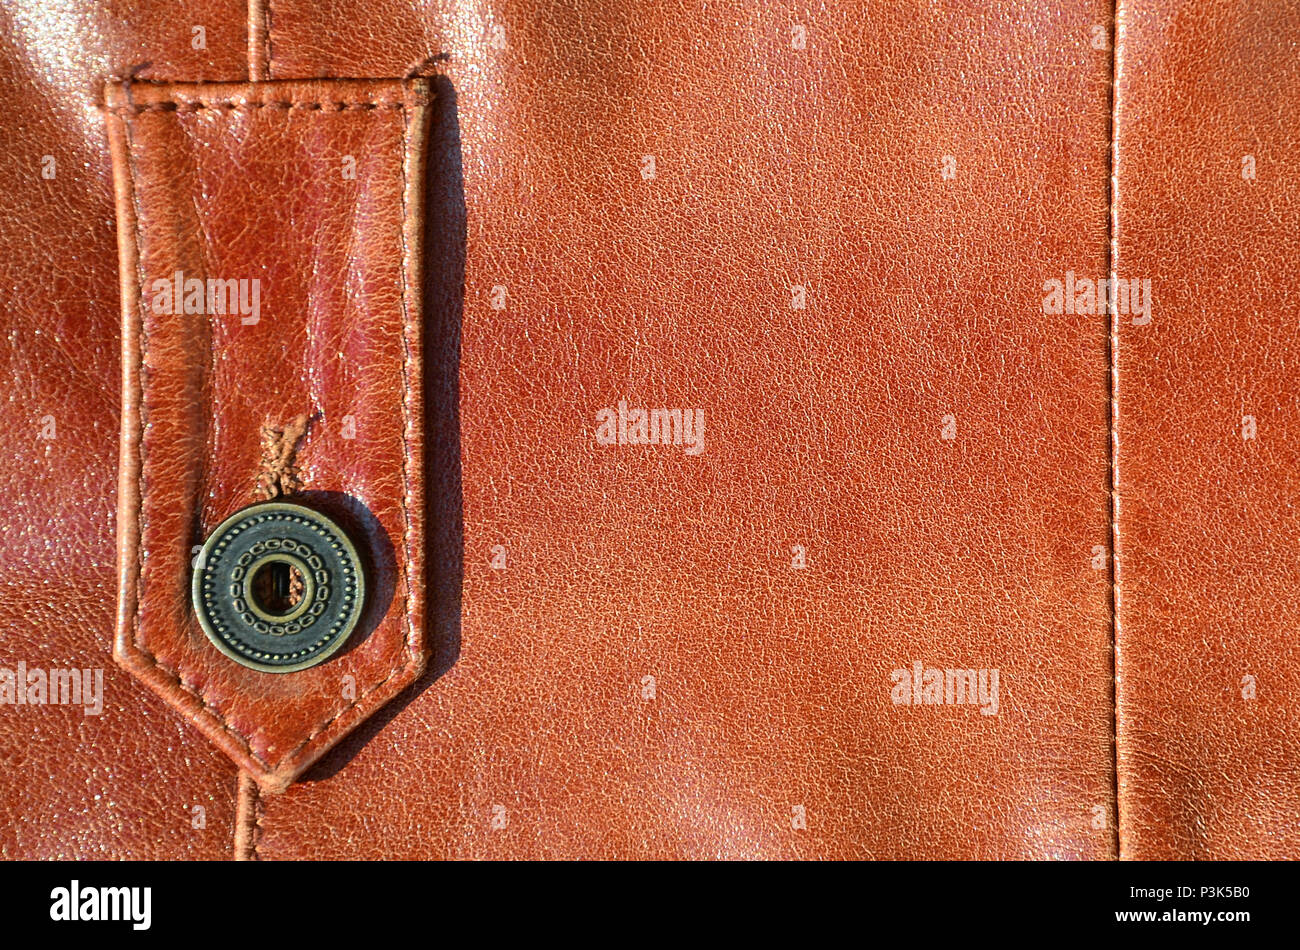 Brown leather texture. Useful as background for any design work. Macro photo of a button on outer clothing made of genuine leather - Stock Image